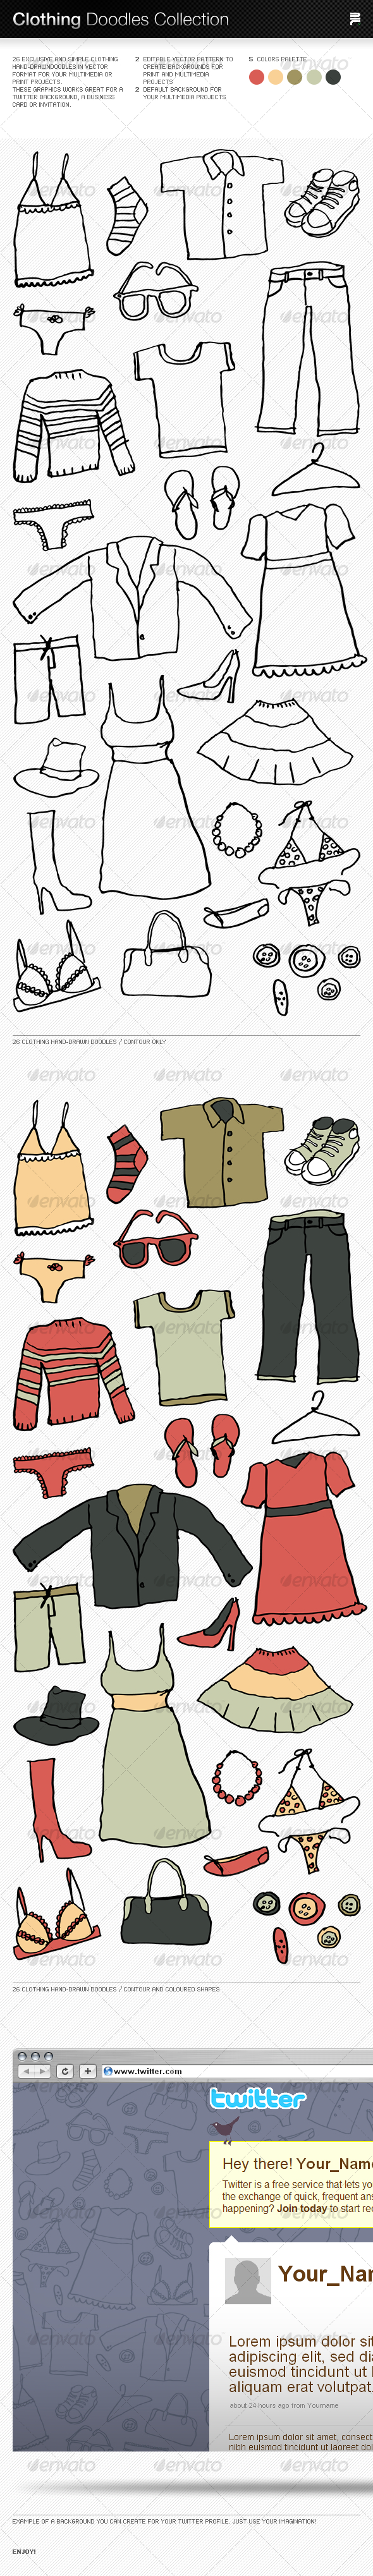 GraphicRiver Clothing Doodles Collection 86453